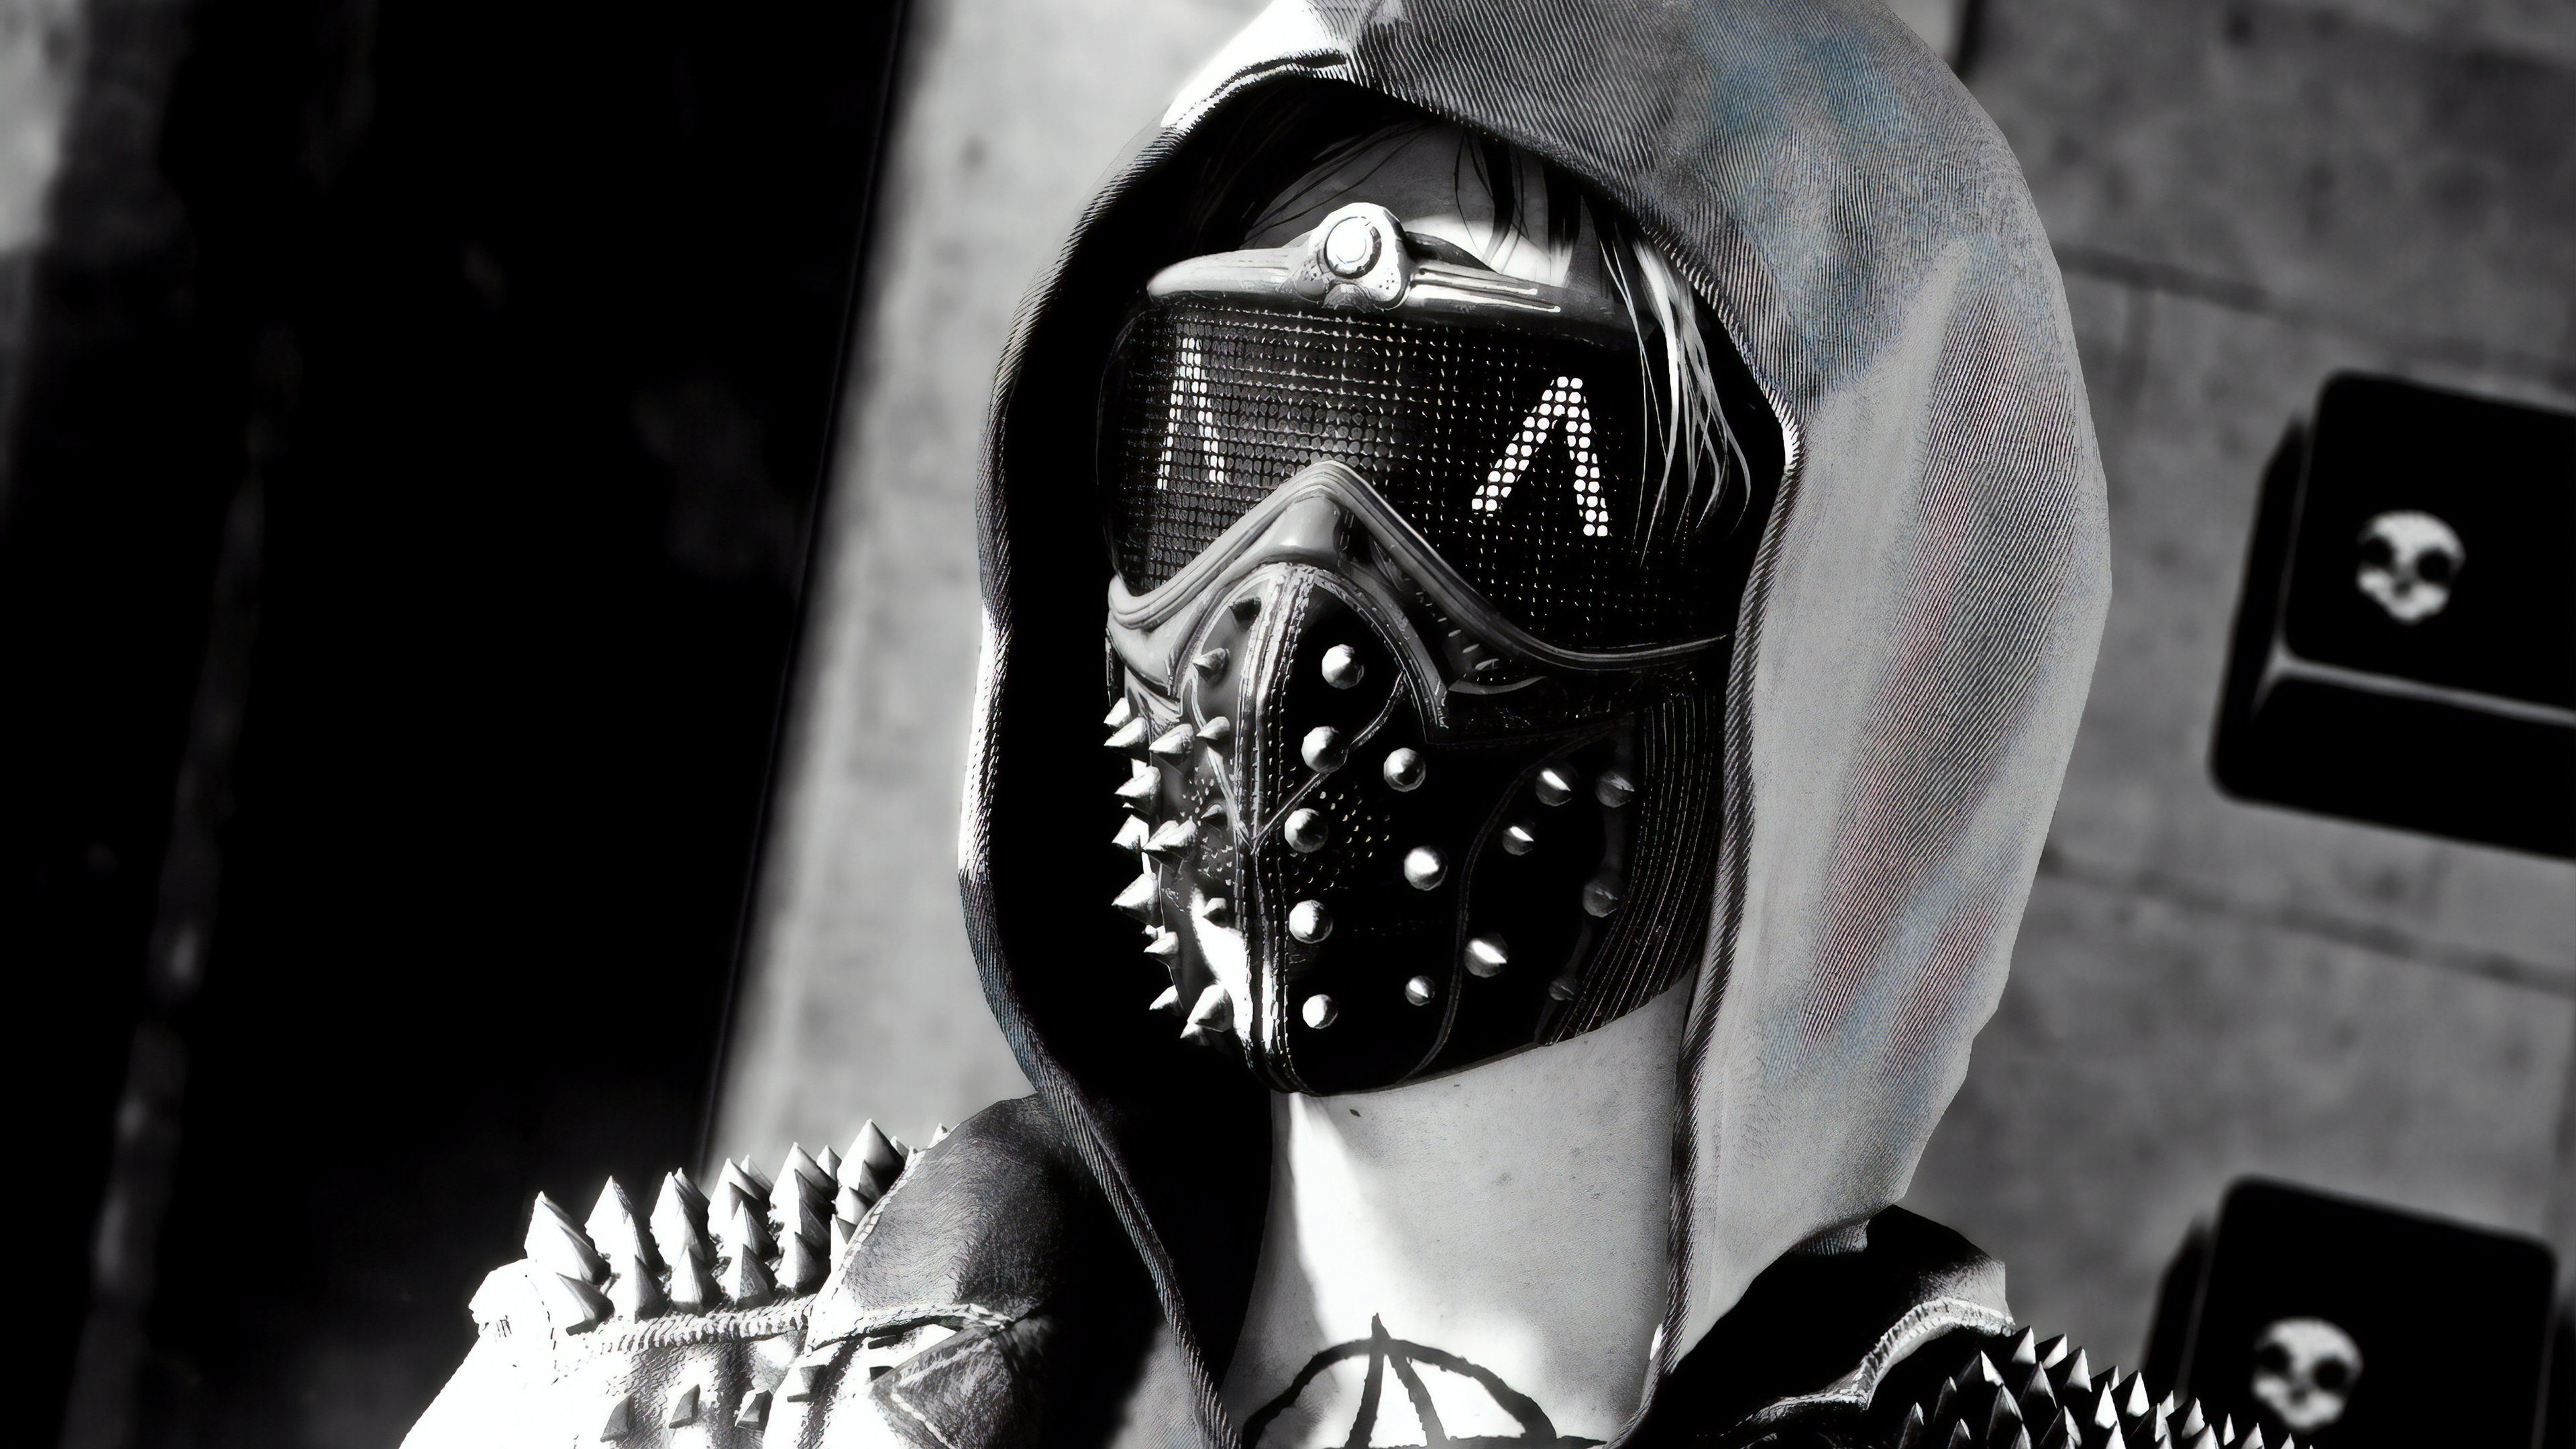 wrench watch dogs 2 monochorme 1565054351 - Wrench Watch Dogs 2 Monochorme - wrench watch dogs 2 wallpapers, watch dogs 2 wallpapers, monochrome wallpapers, hd-wallpapers, games wallpapers, black and white wallpapers, 4k-wallpapers